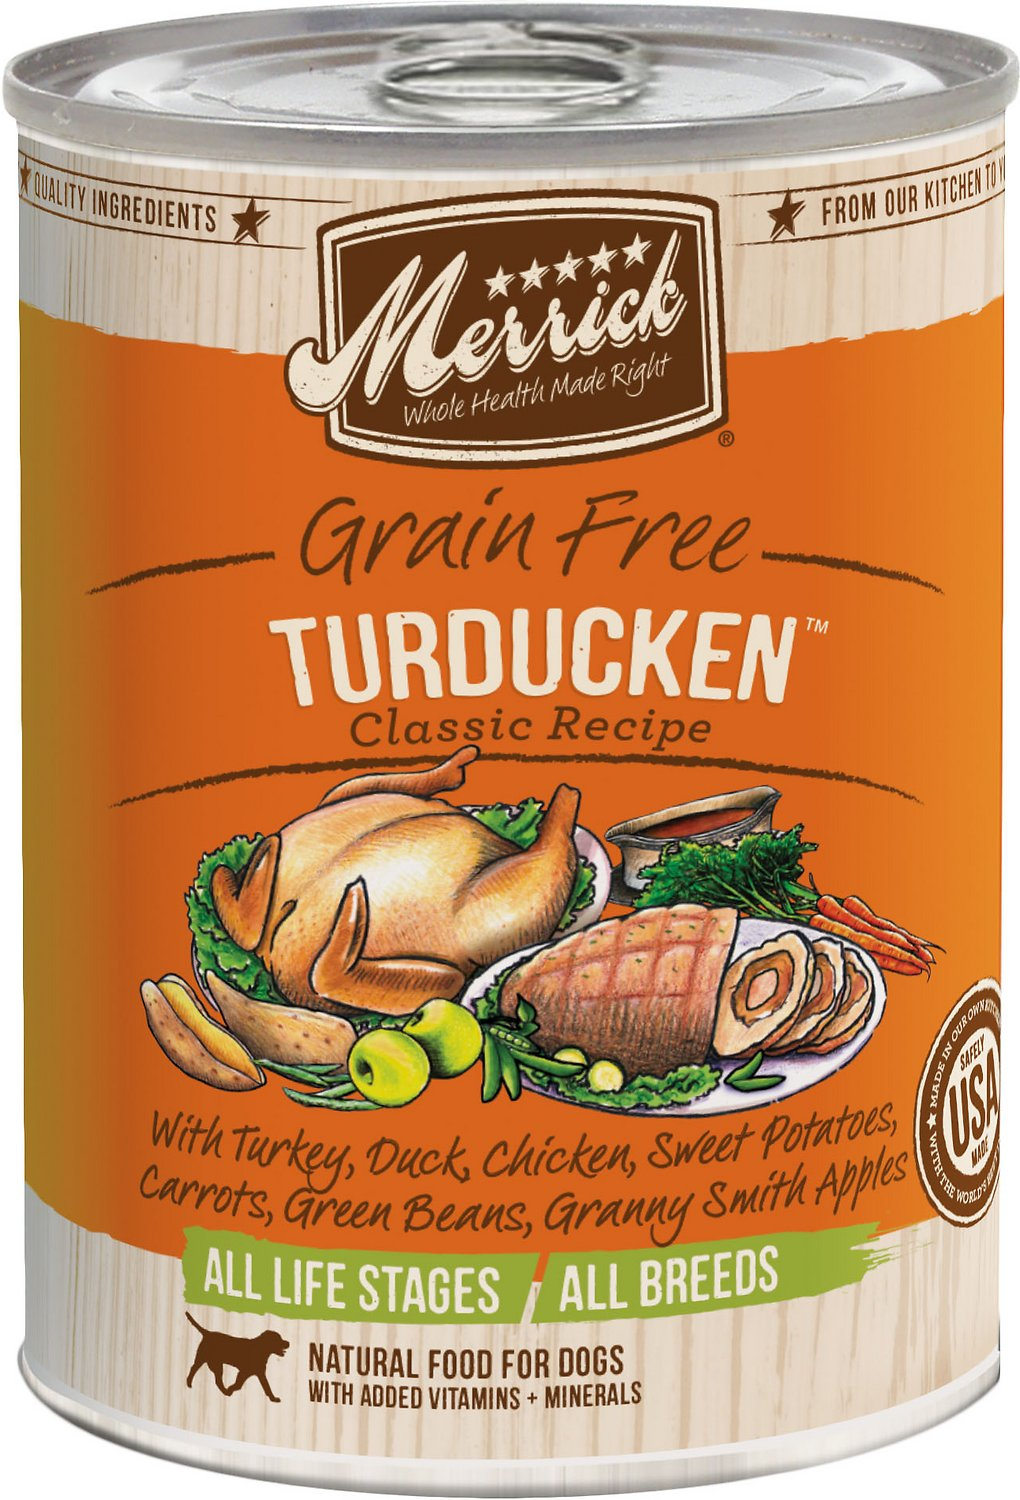 Merrick Grain-Free Turducken Recipe Canned Dog Food Image